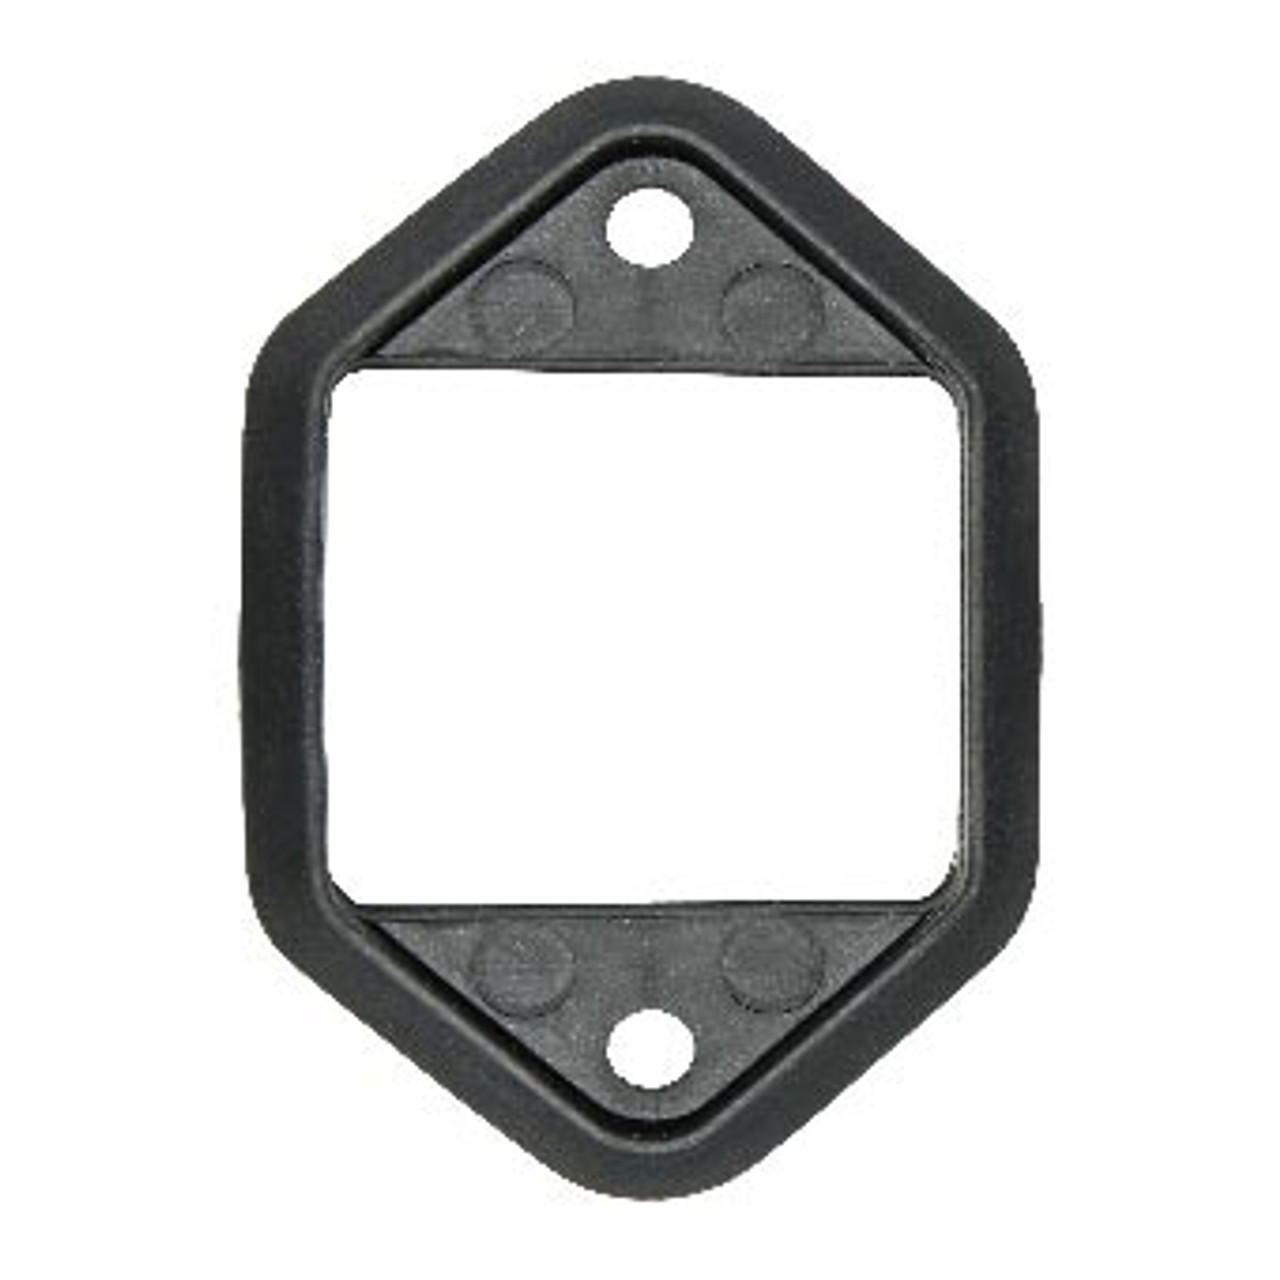 285/185 MOLDED RUBBER BEZEL FOR PANEL MNT BRKRS